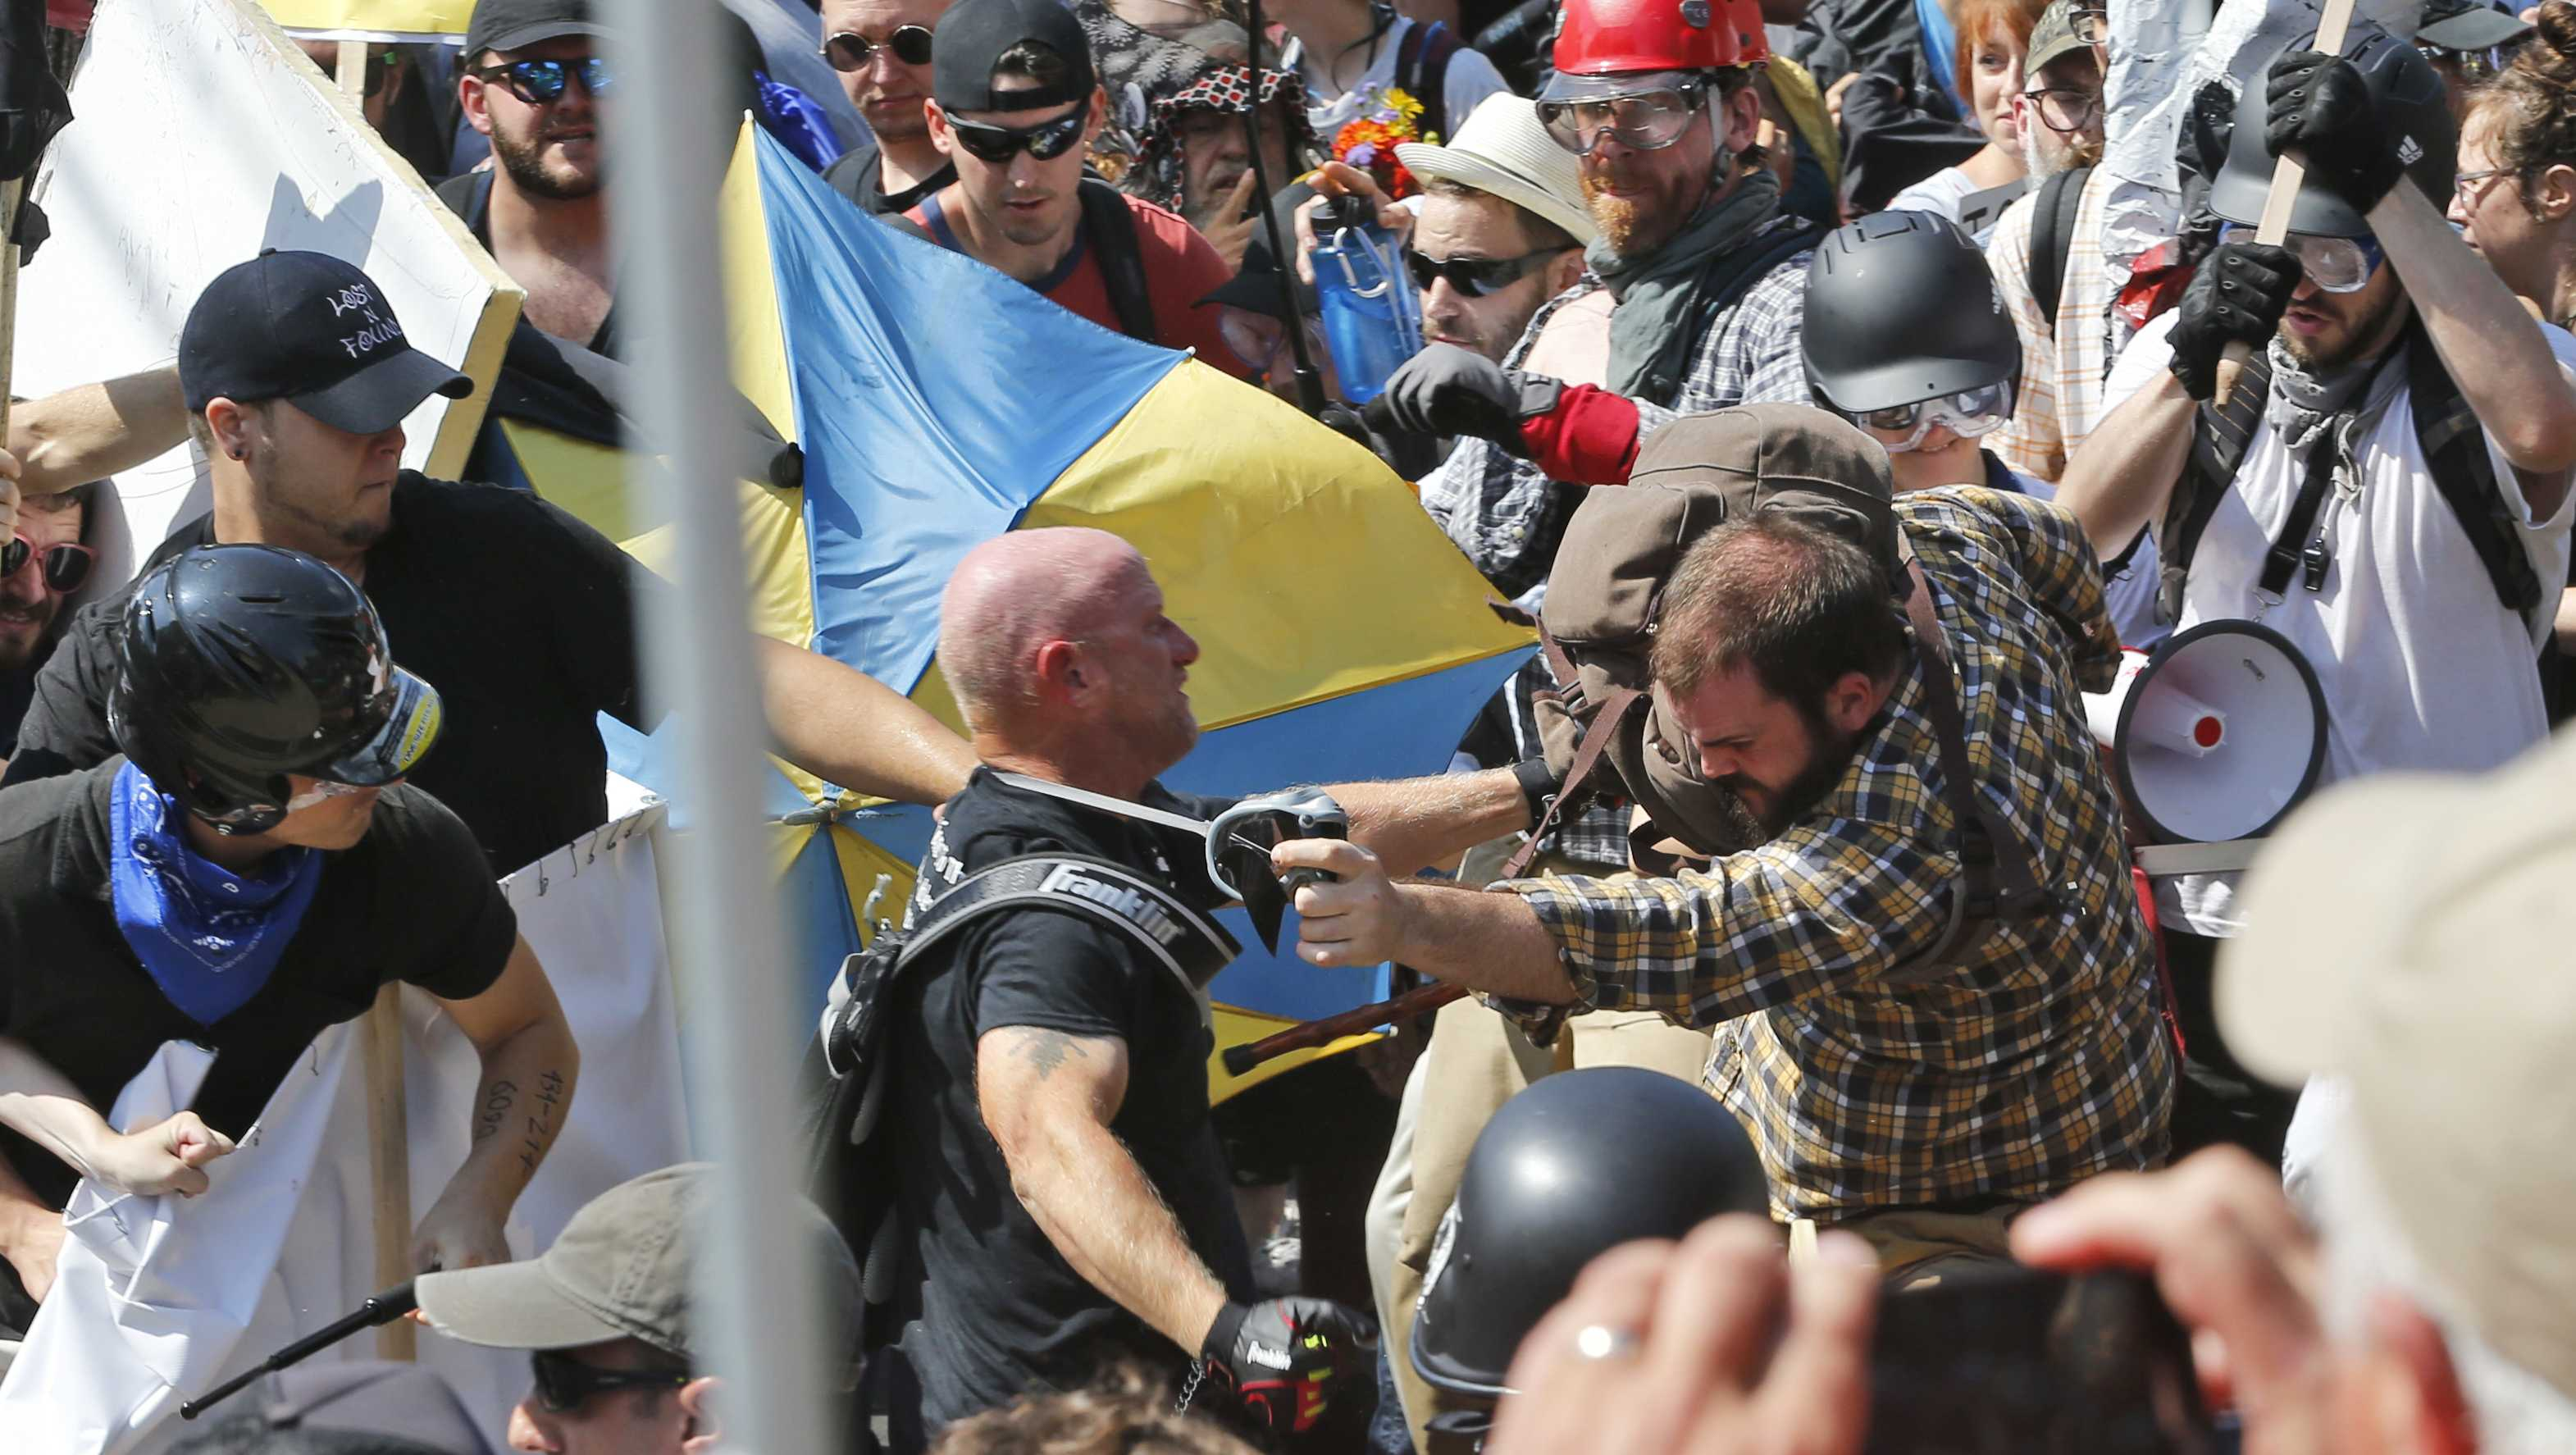 Violence broke out at a Unite the Right rally in Virginia on Saturday.